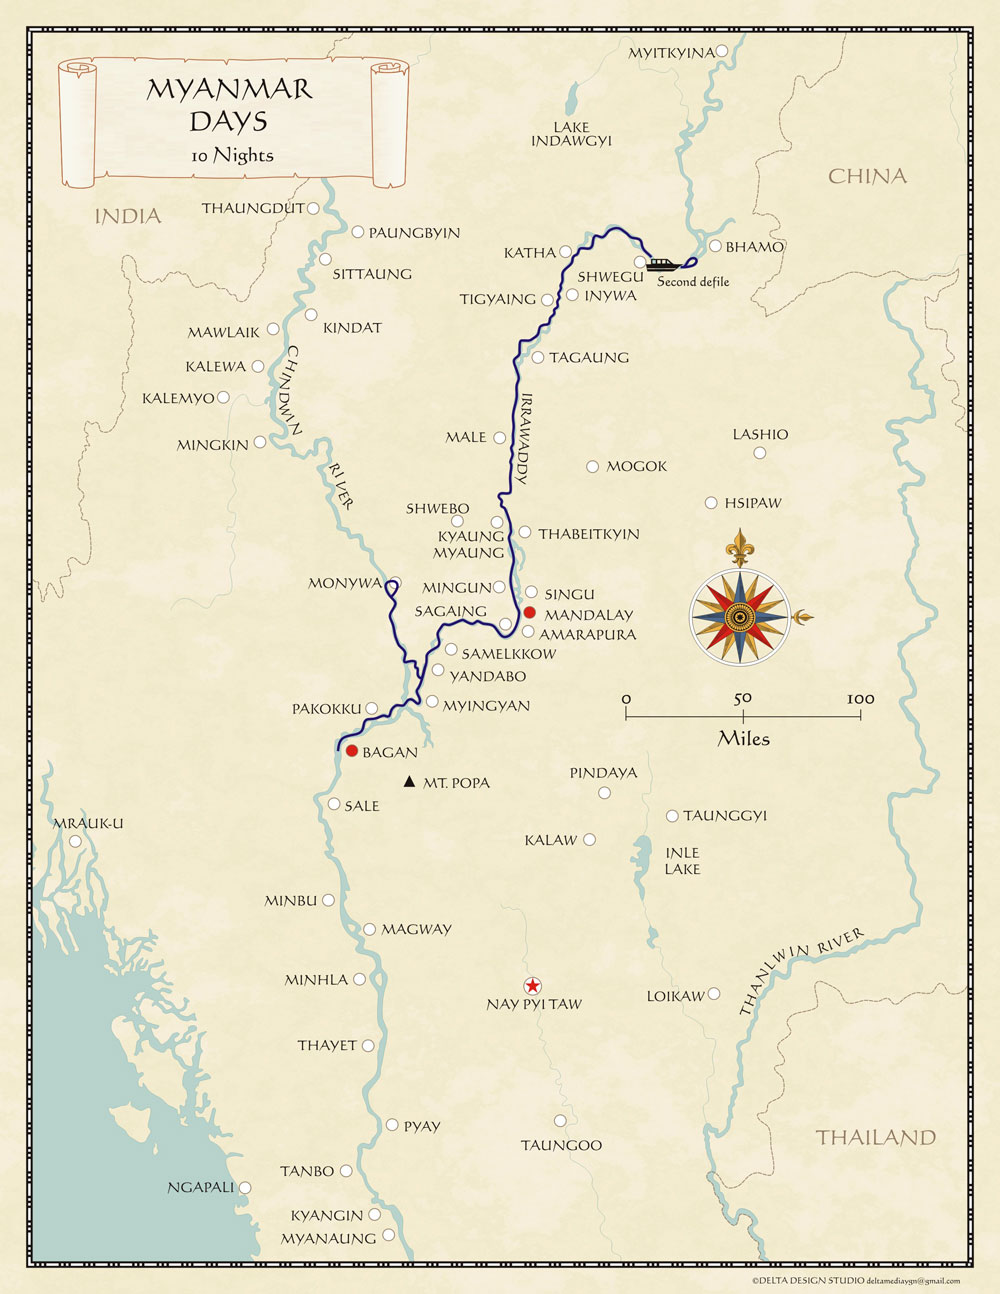 Myanmar Irrawaddy River Cruise map